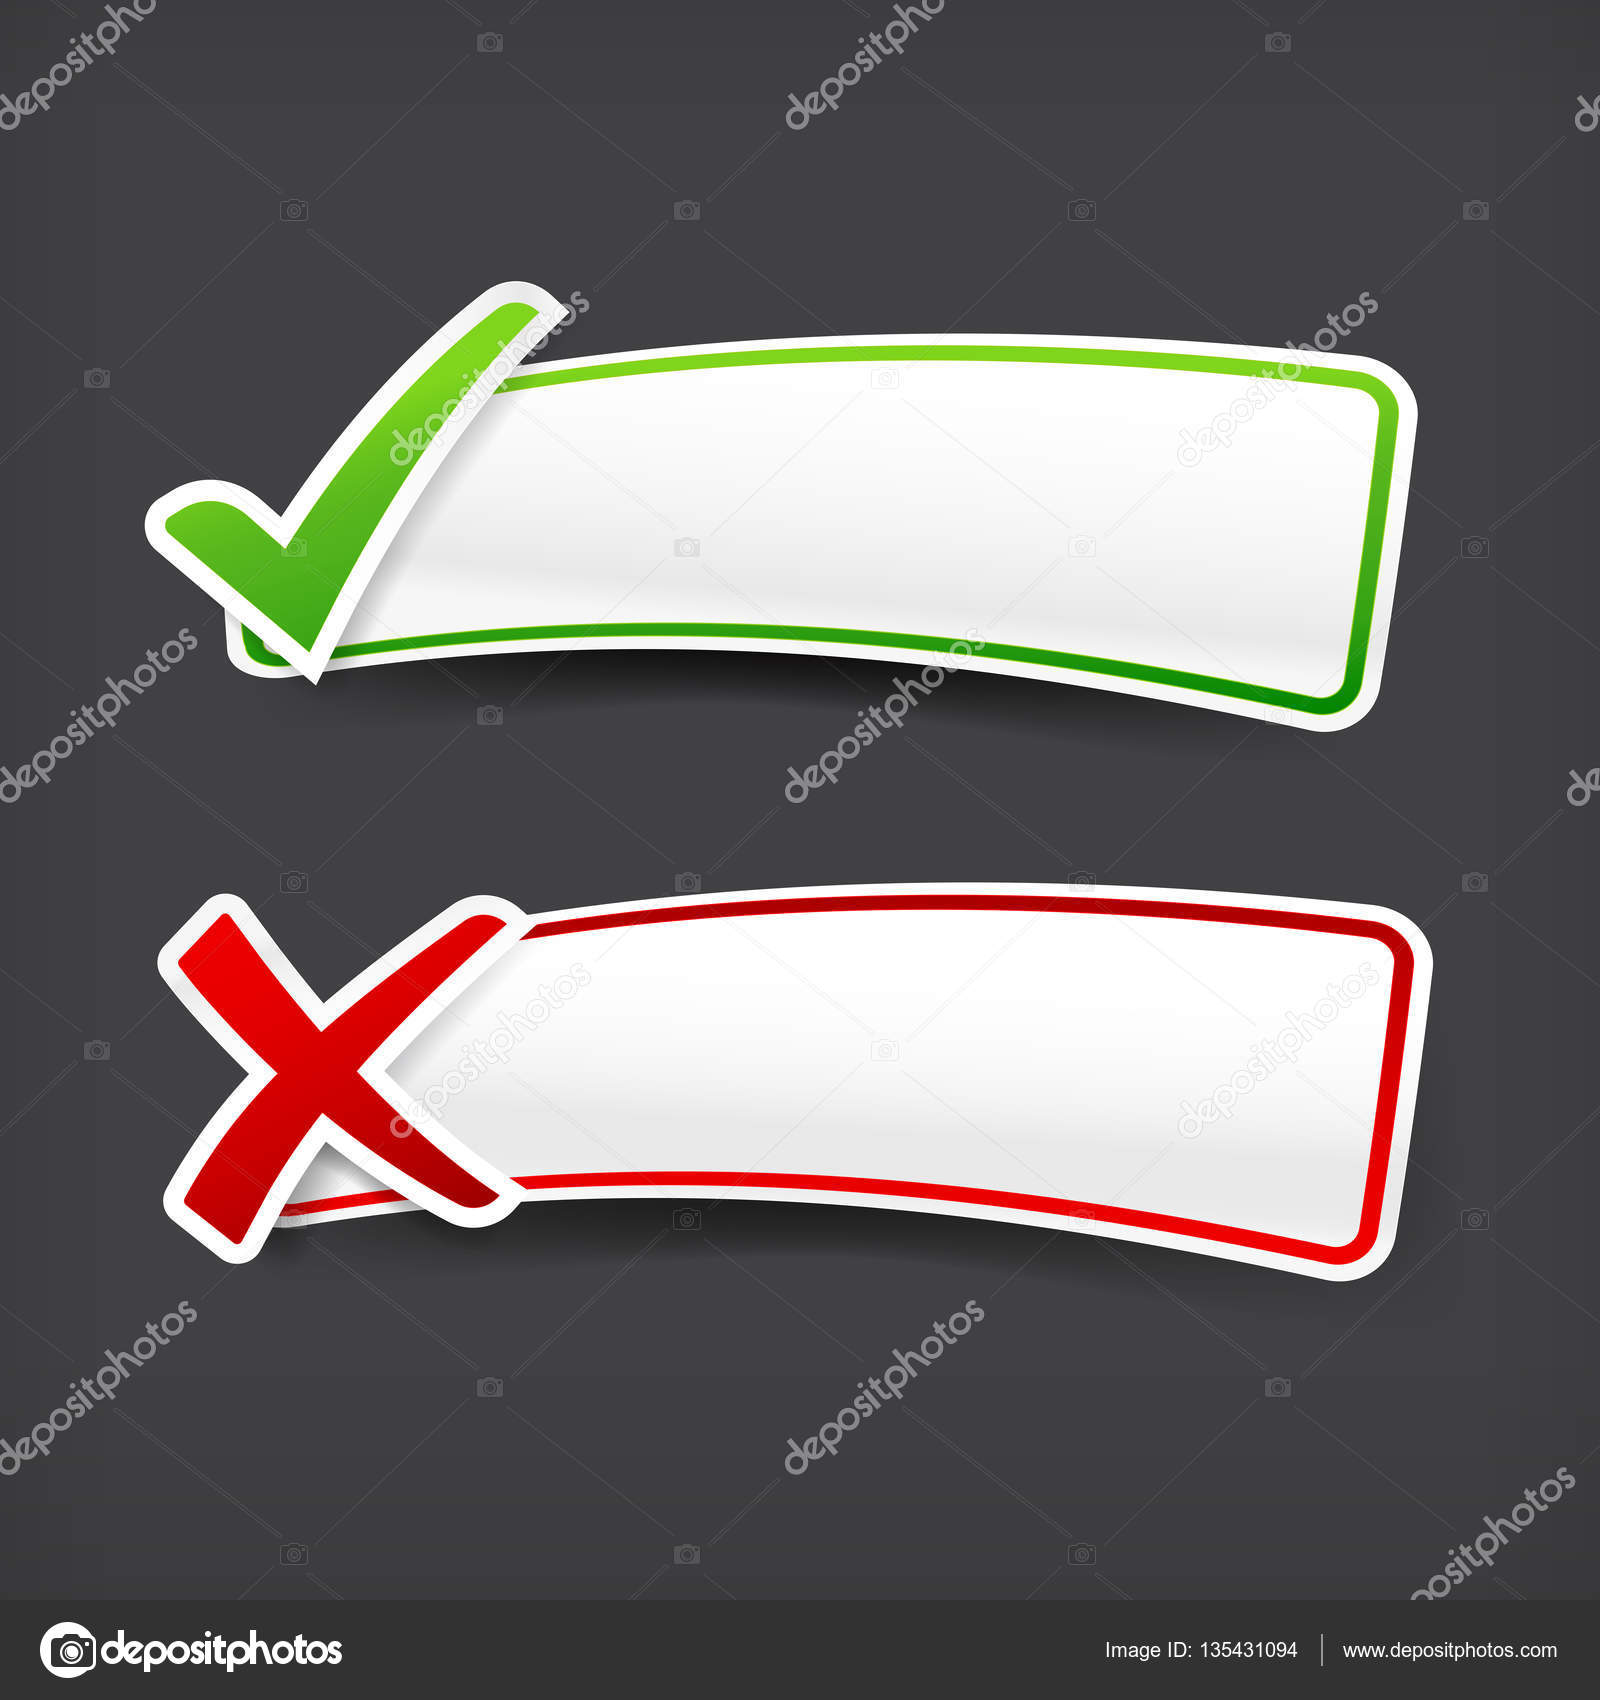 003 set of green and red check mark symbol and blank banner with set of green and red check mark symbol and blank banner with copy space vector illustration eps 10 vector by thekaikoroez biocorpaavc